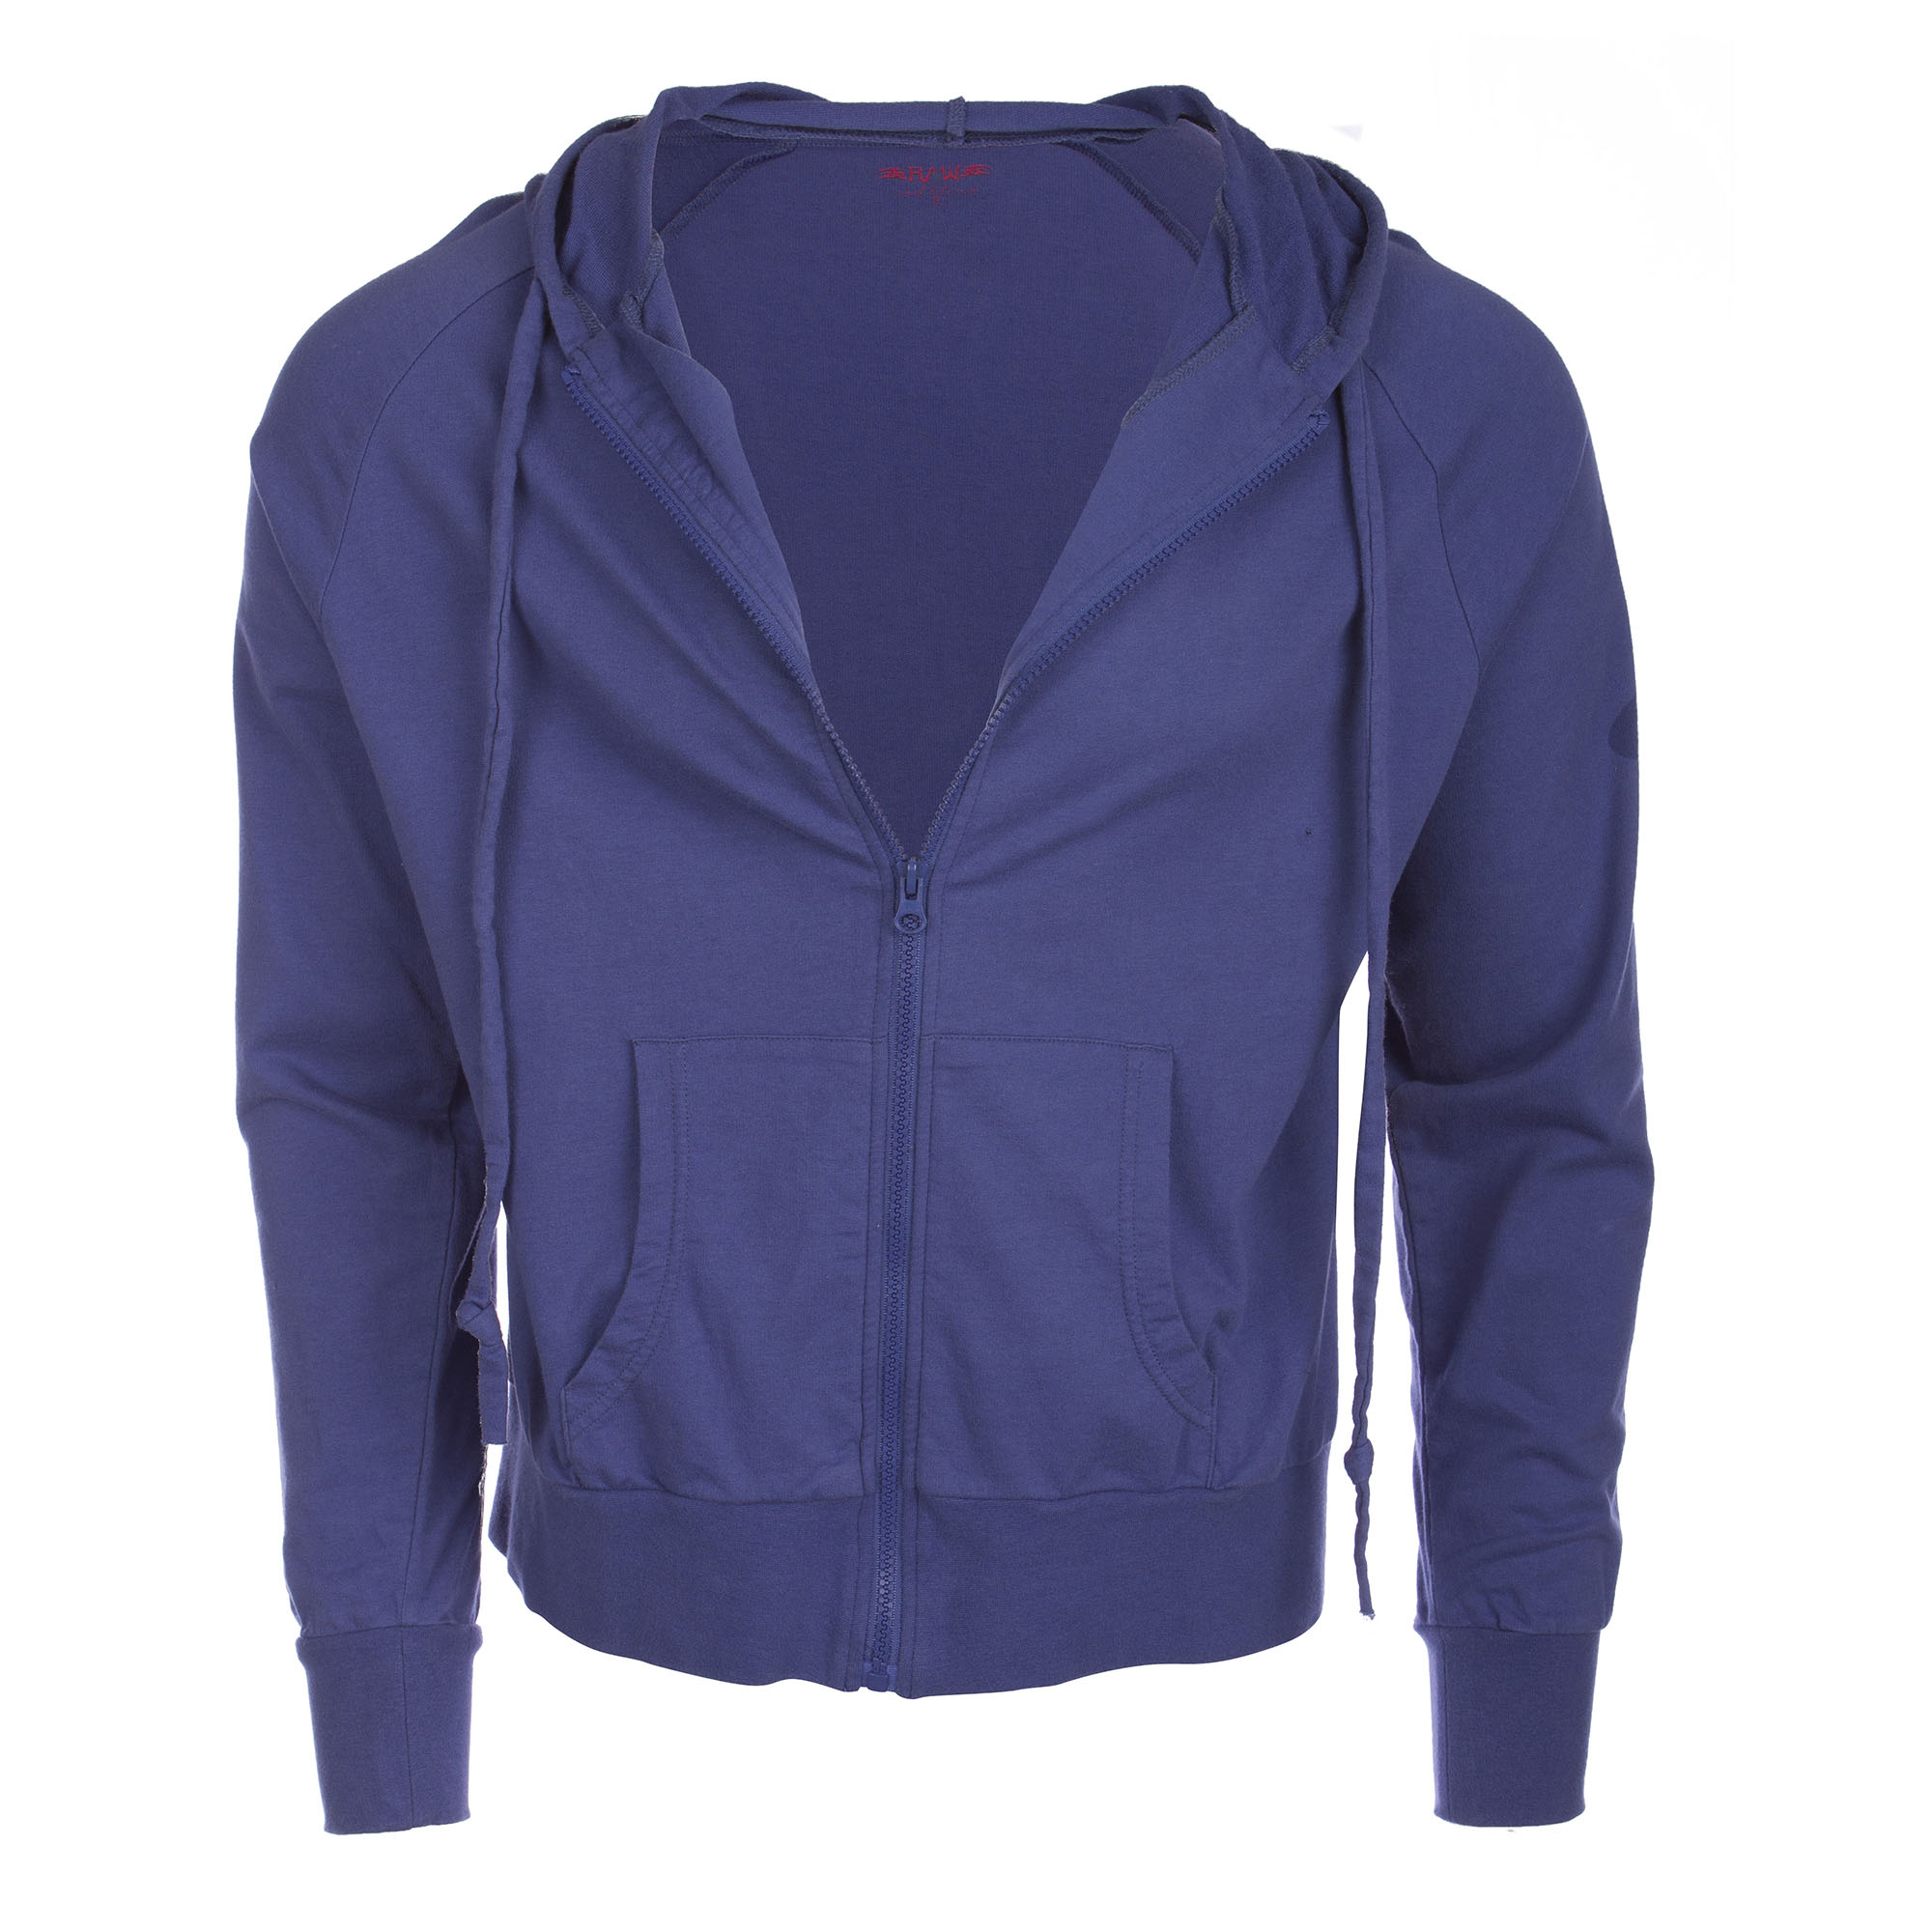 RAW 7 P09A05-WATER Raw7 Men's Blue Zip Hoodie with Chinese Symbol for Water